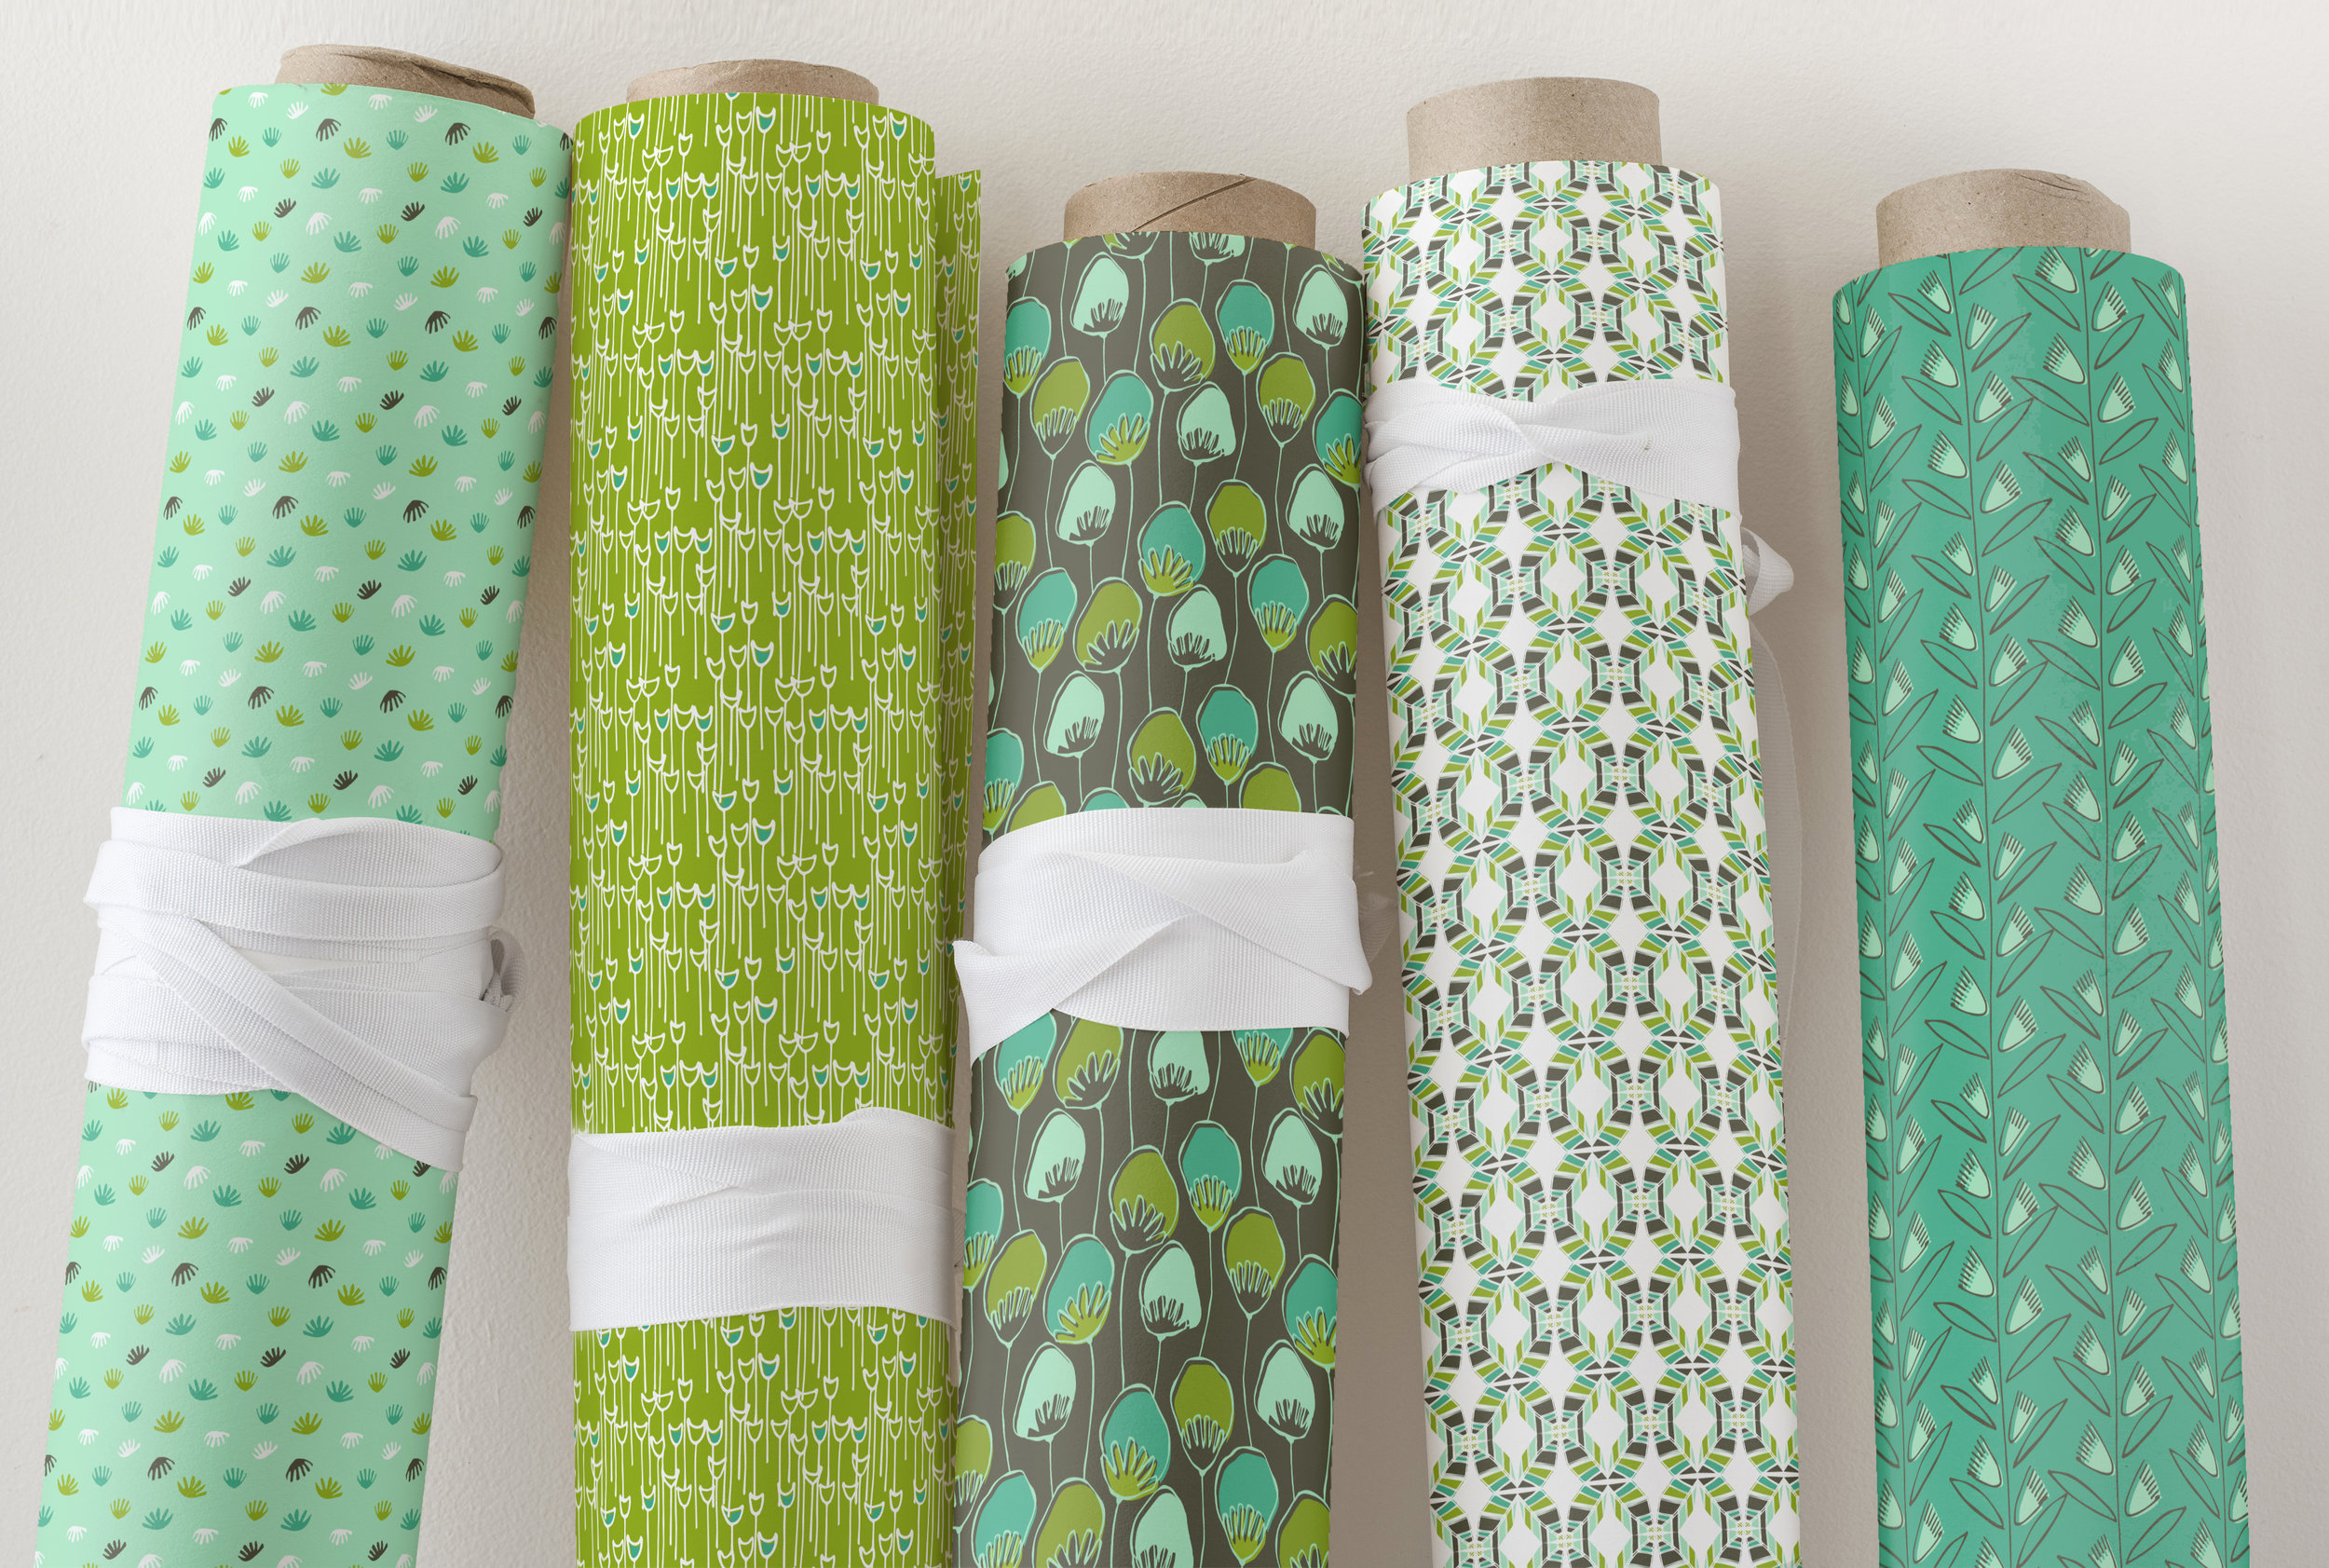 FIELDBLOOM fabric2.jpg